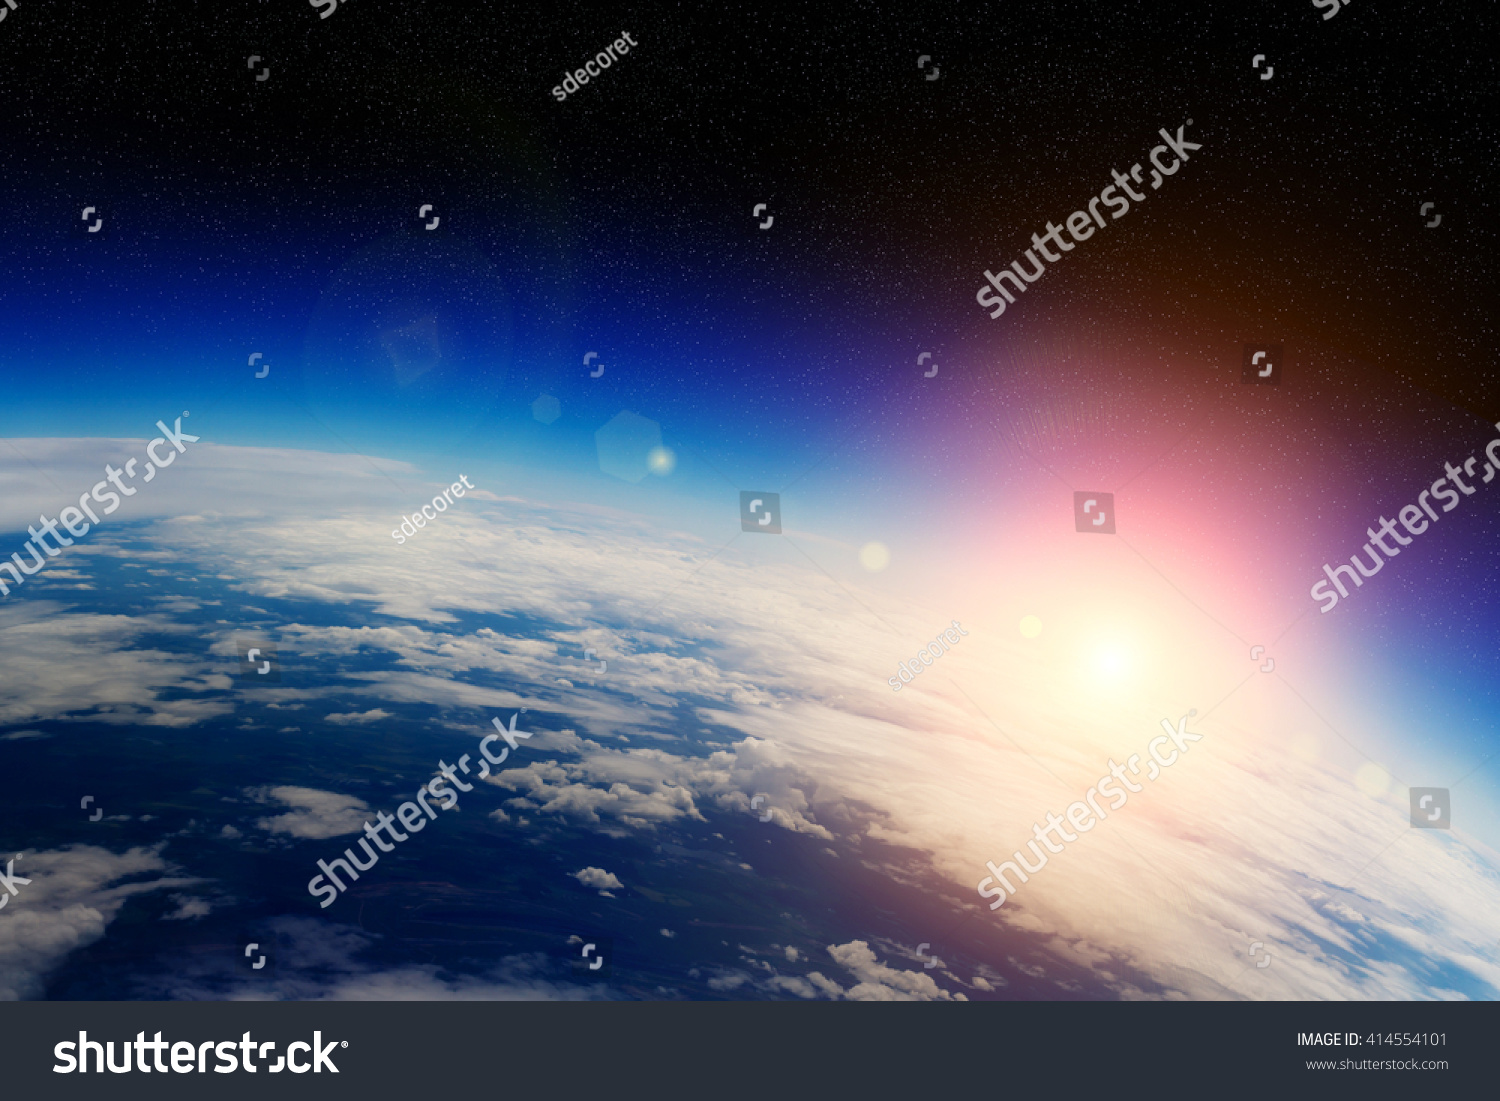 View of the planet Earth from space during a sunrise elements of this image furnished by NASA'